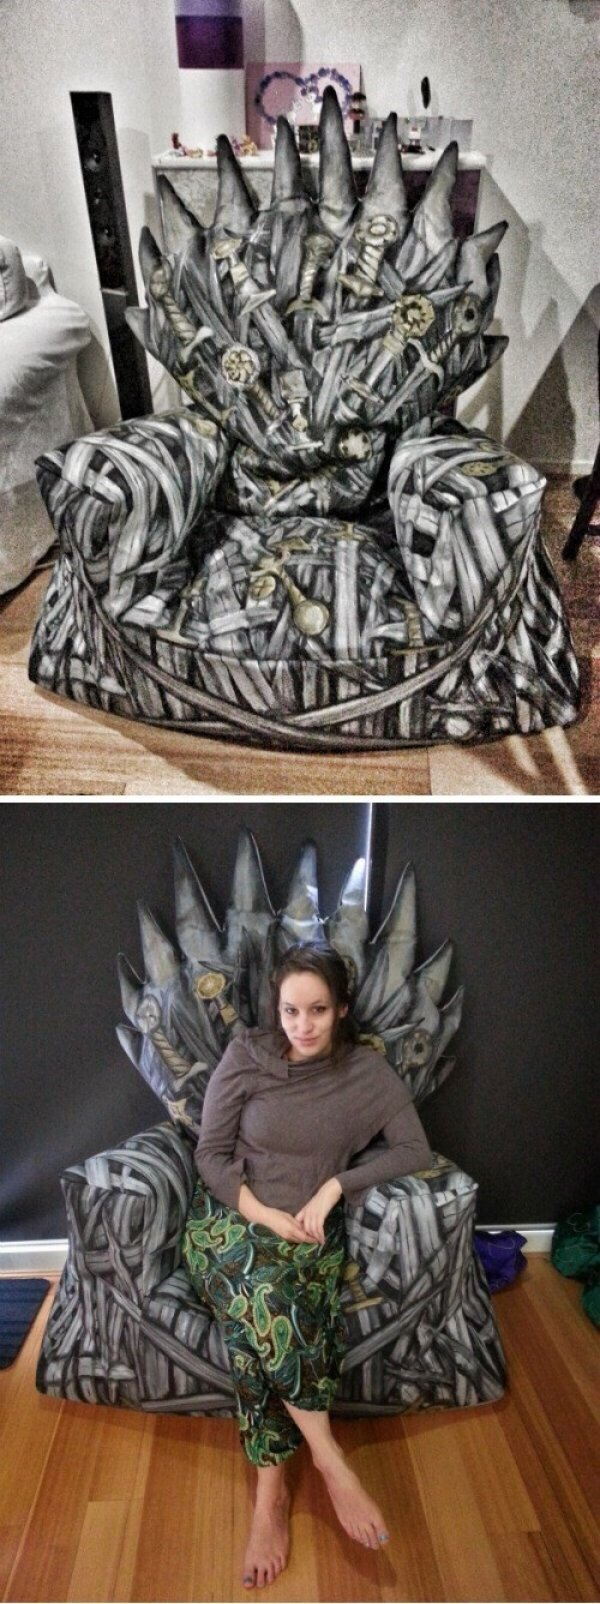 Only one can chill on the throne, brah - Изображение 1